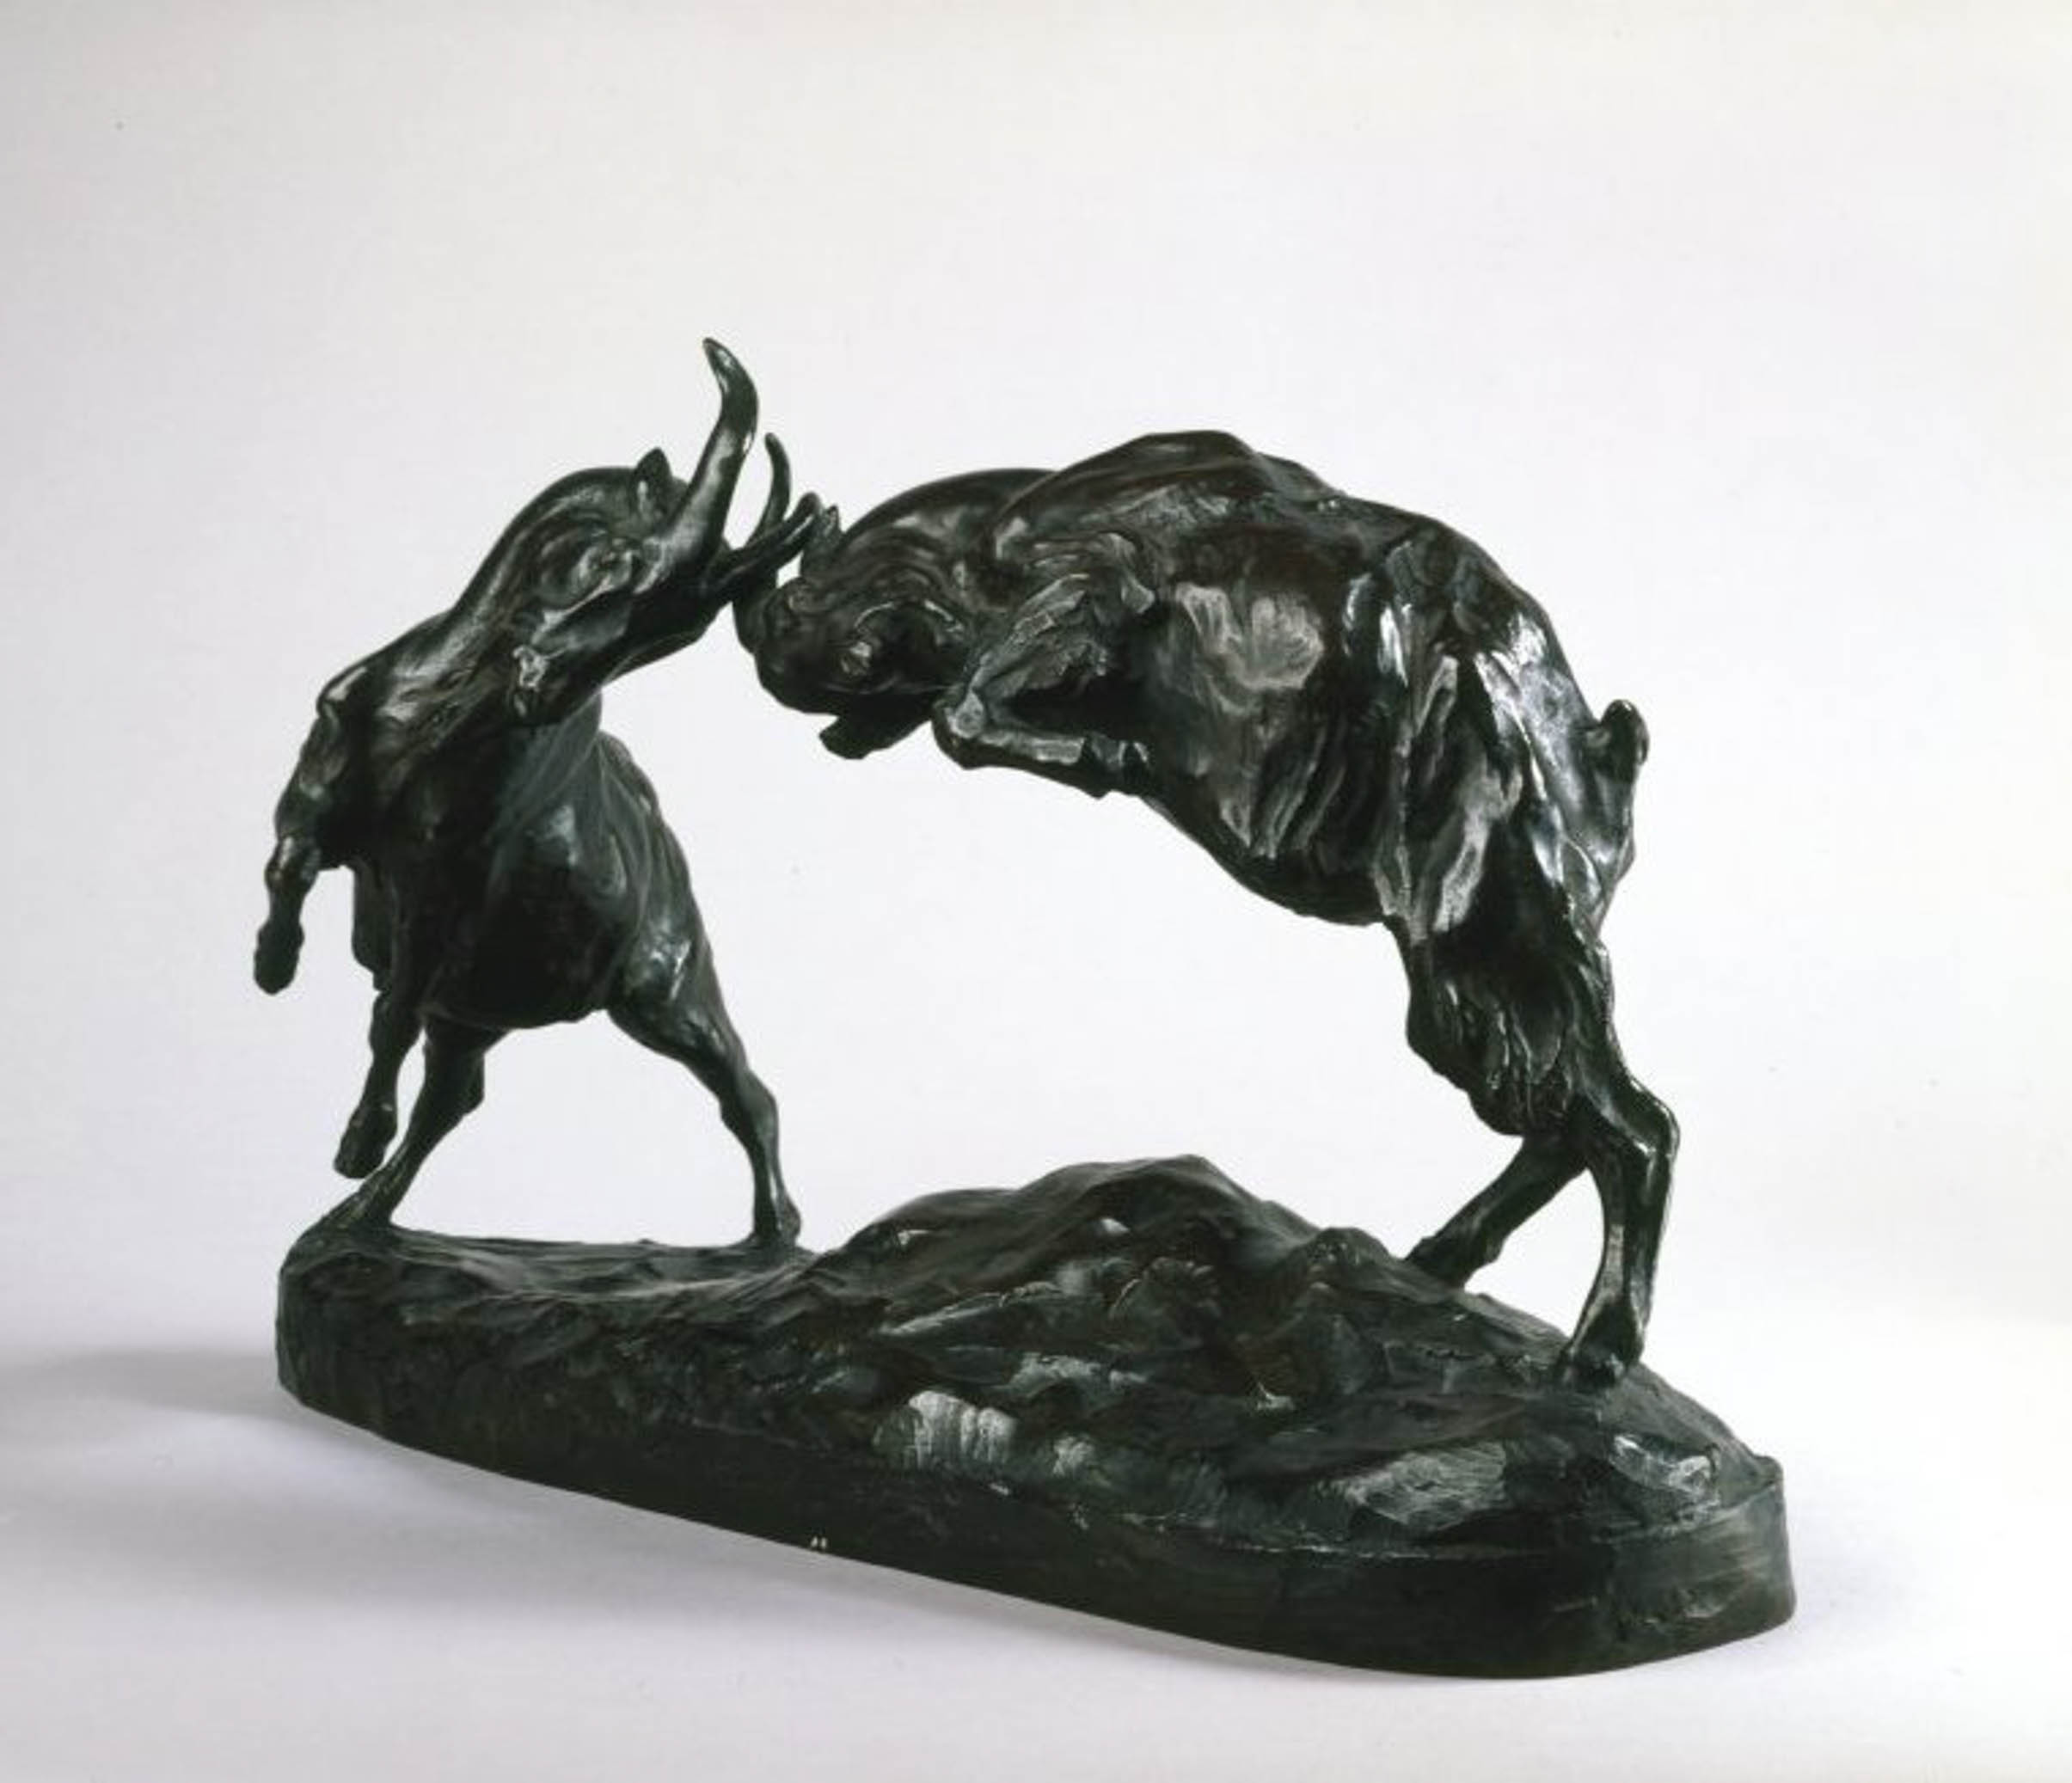 A sculpture of two goats fighting.